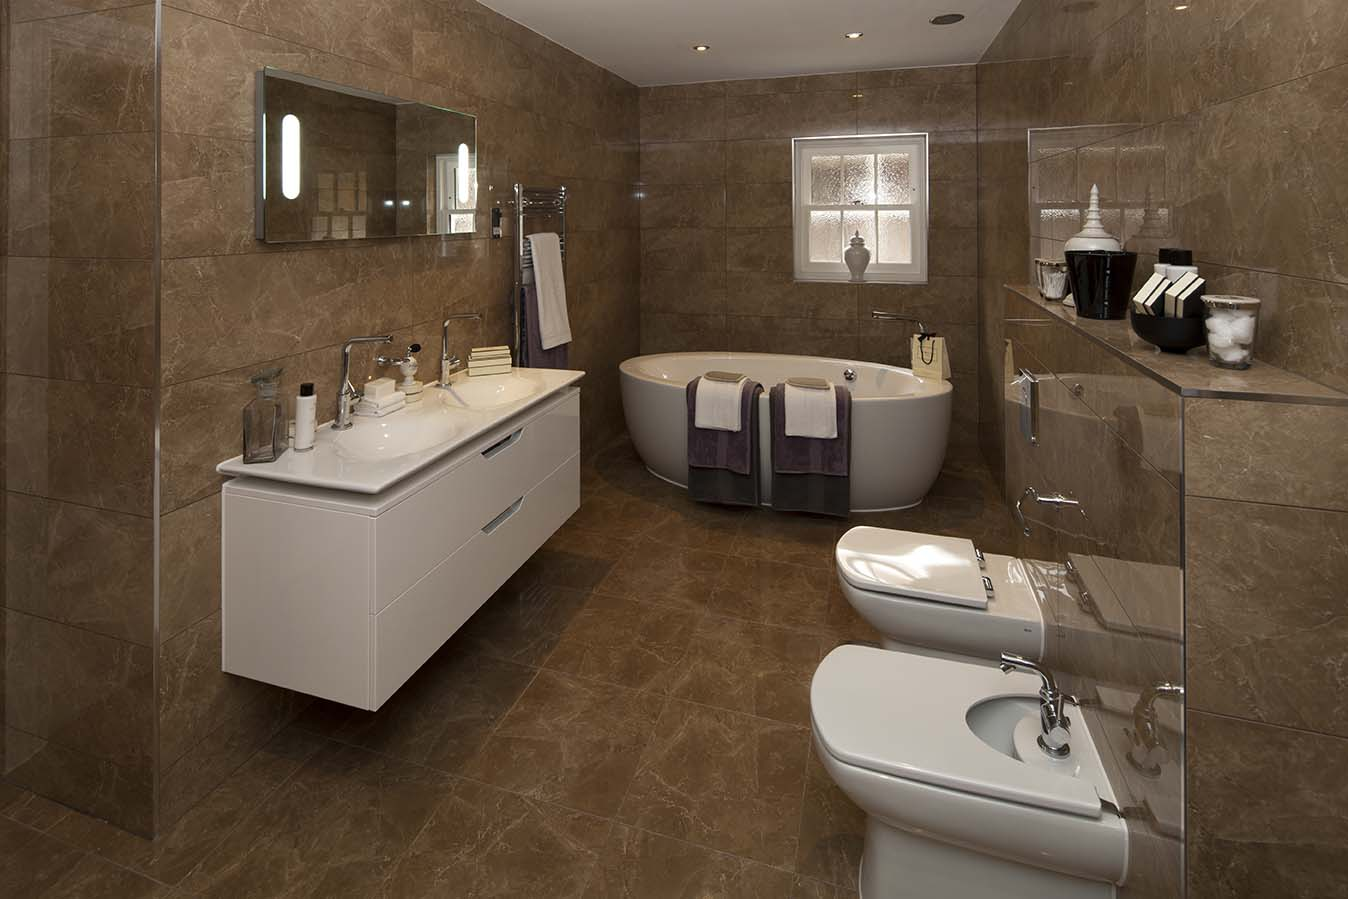 Orchard grove rickmansworth specification and gallery bewley homes Master bedroom ensuite and dressing room